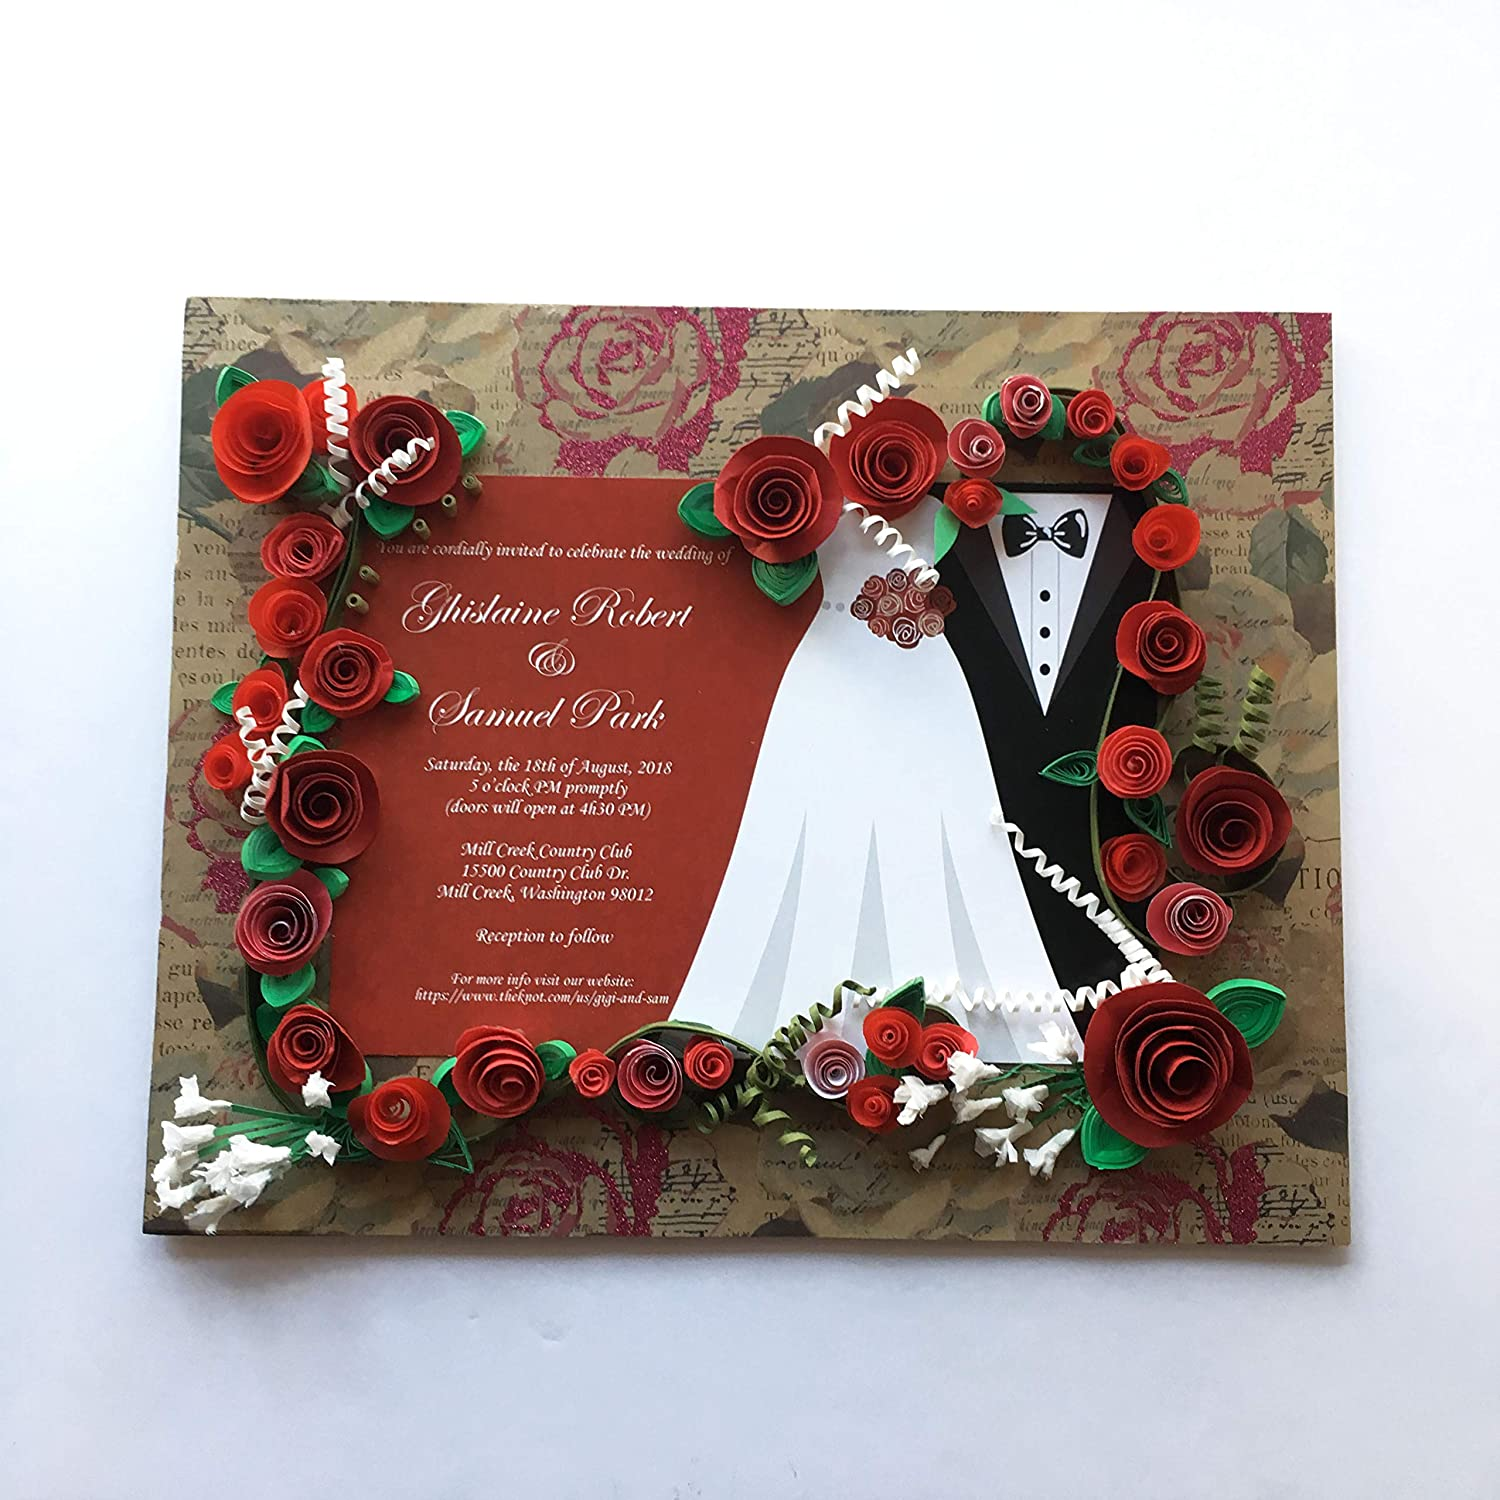 Rose Themed Wedding Invitation Keepsake: Amazon.ca: Handmade